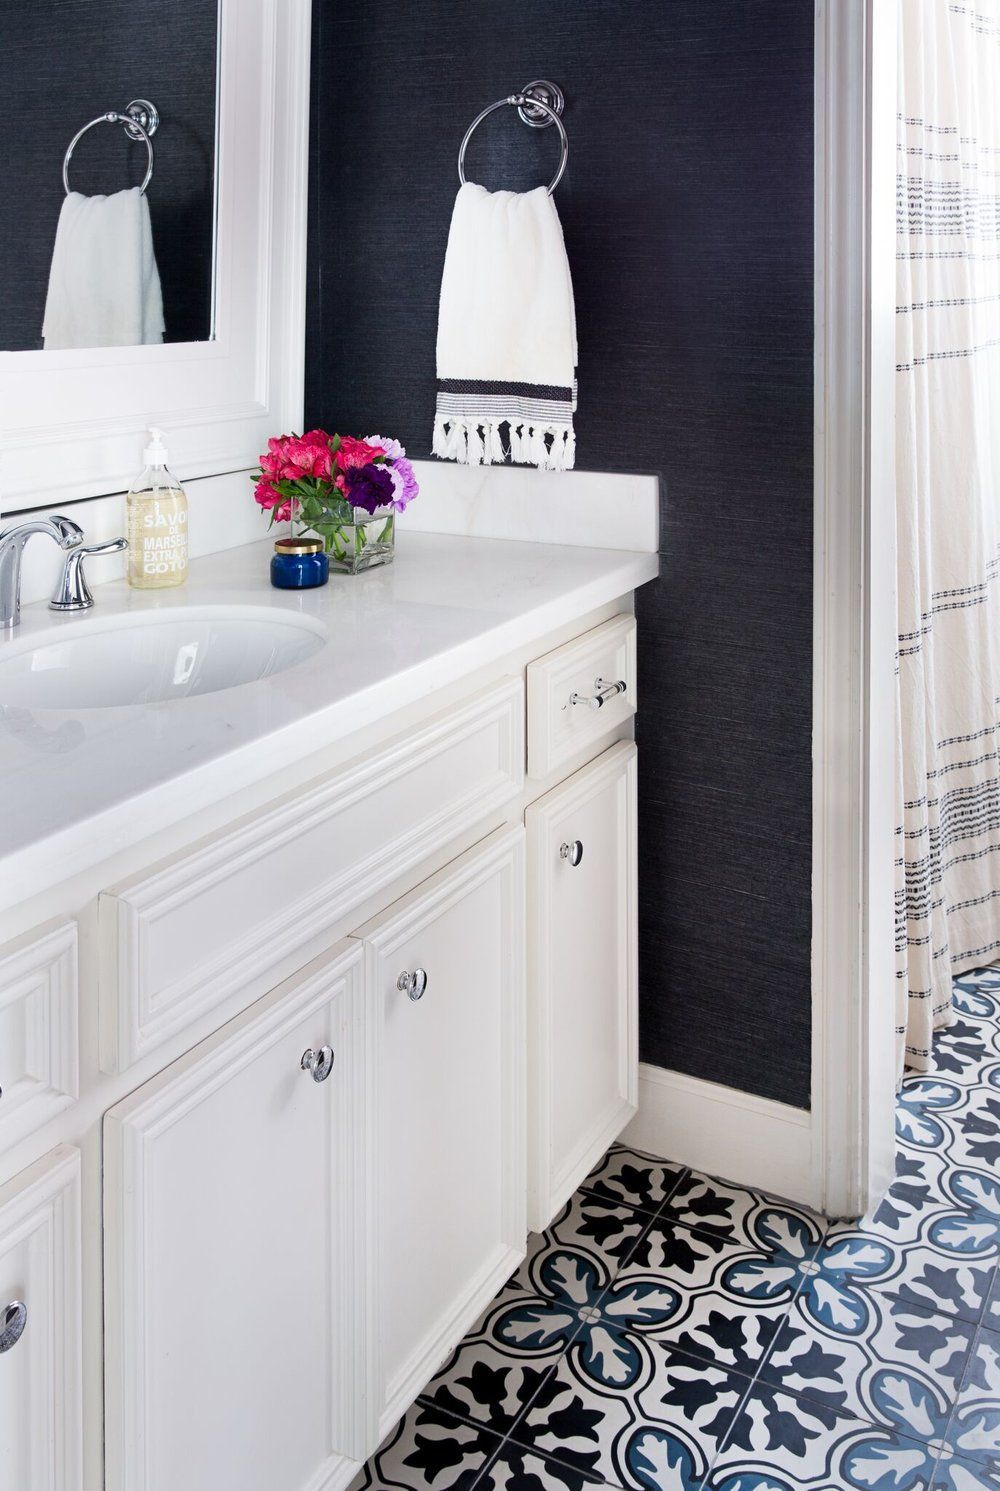 Beautiful Patterned Tile Floor In Bathroom Design Jennifer